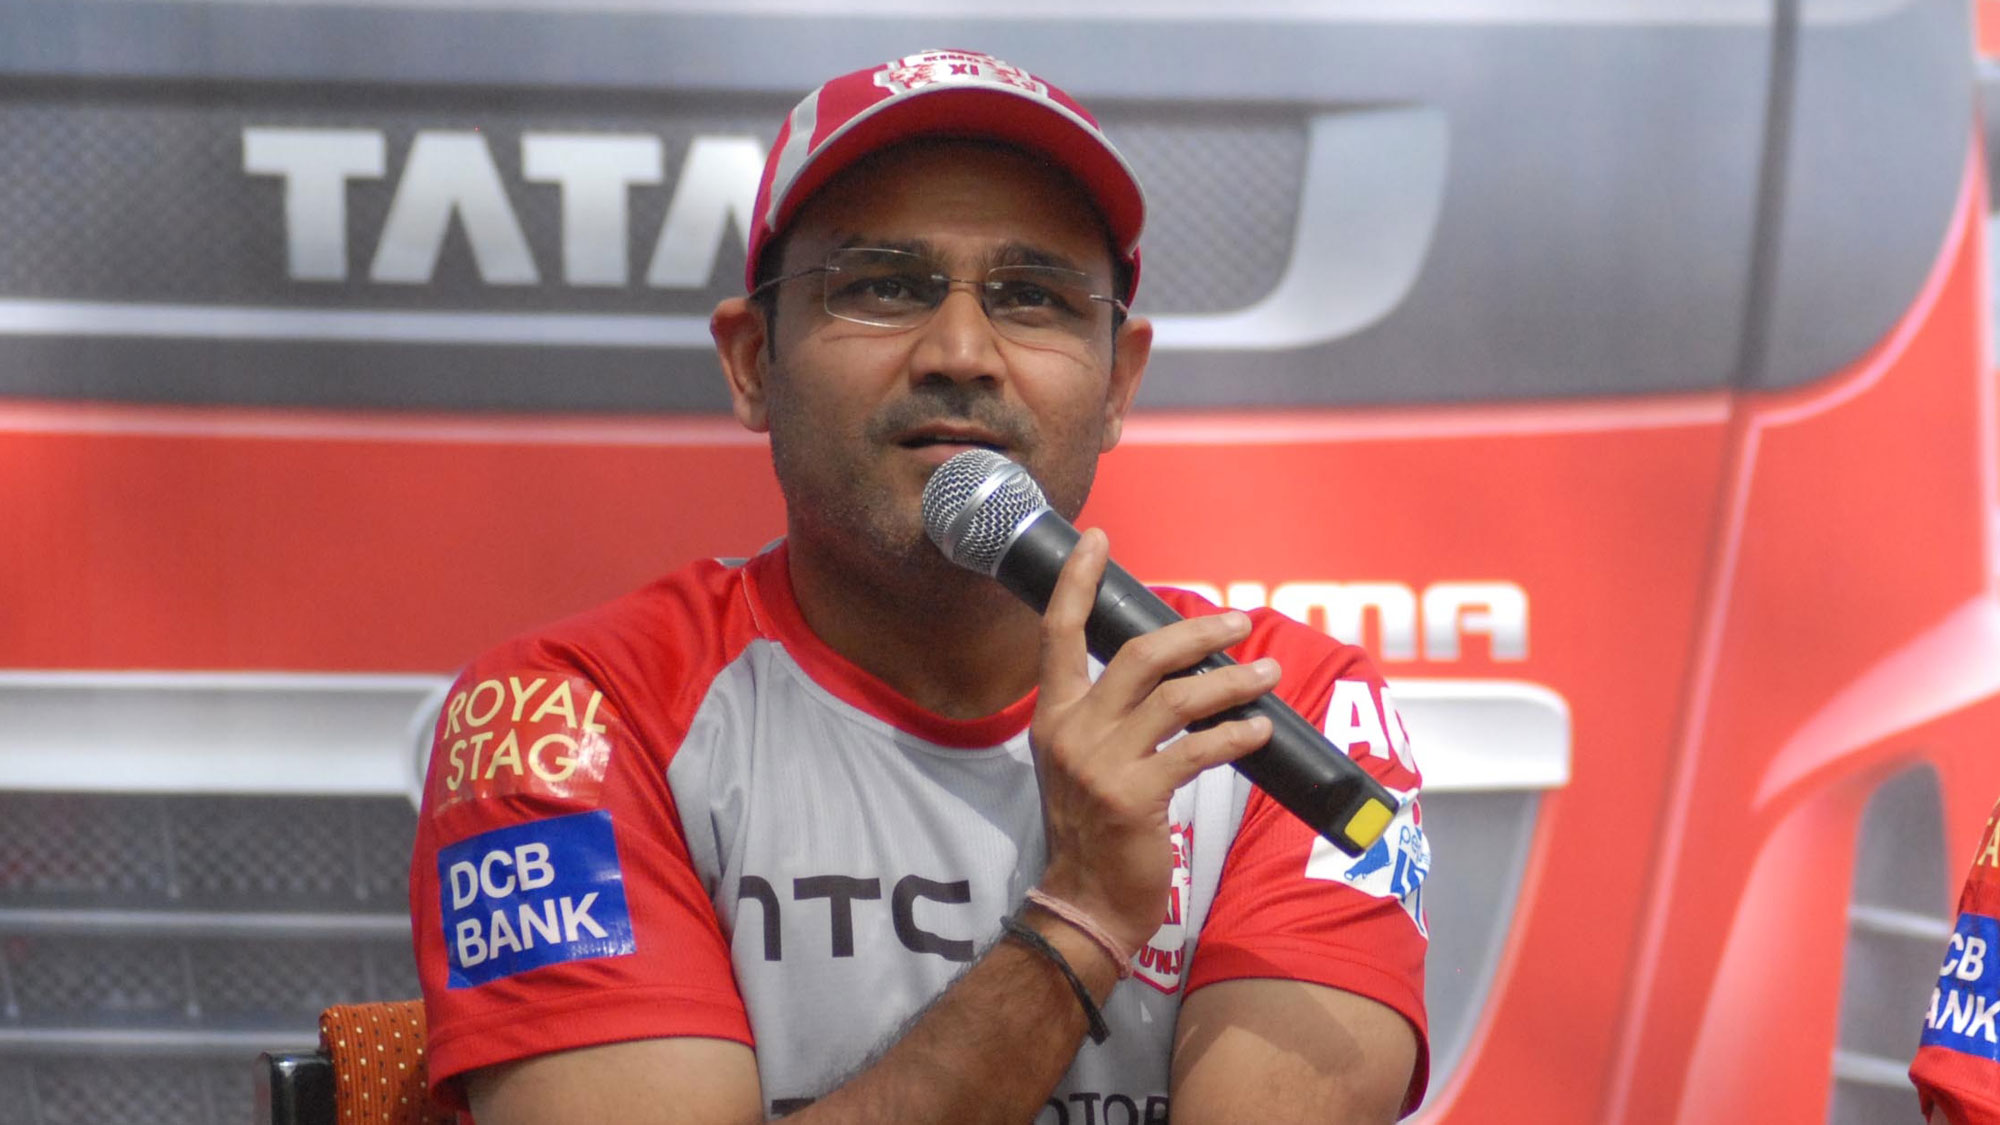 IPL 2018: Virender Sehwag terms current KXIP squad as the best in last 10 years